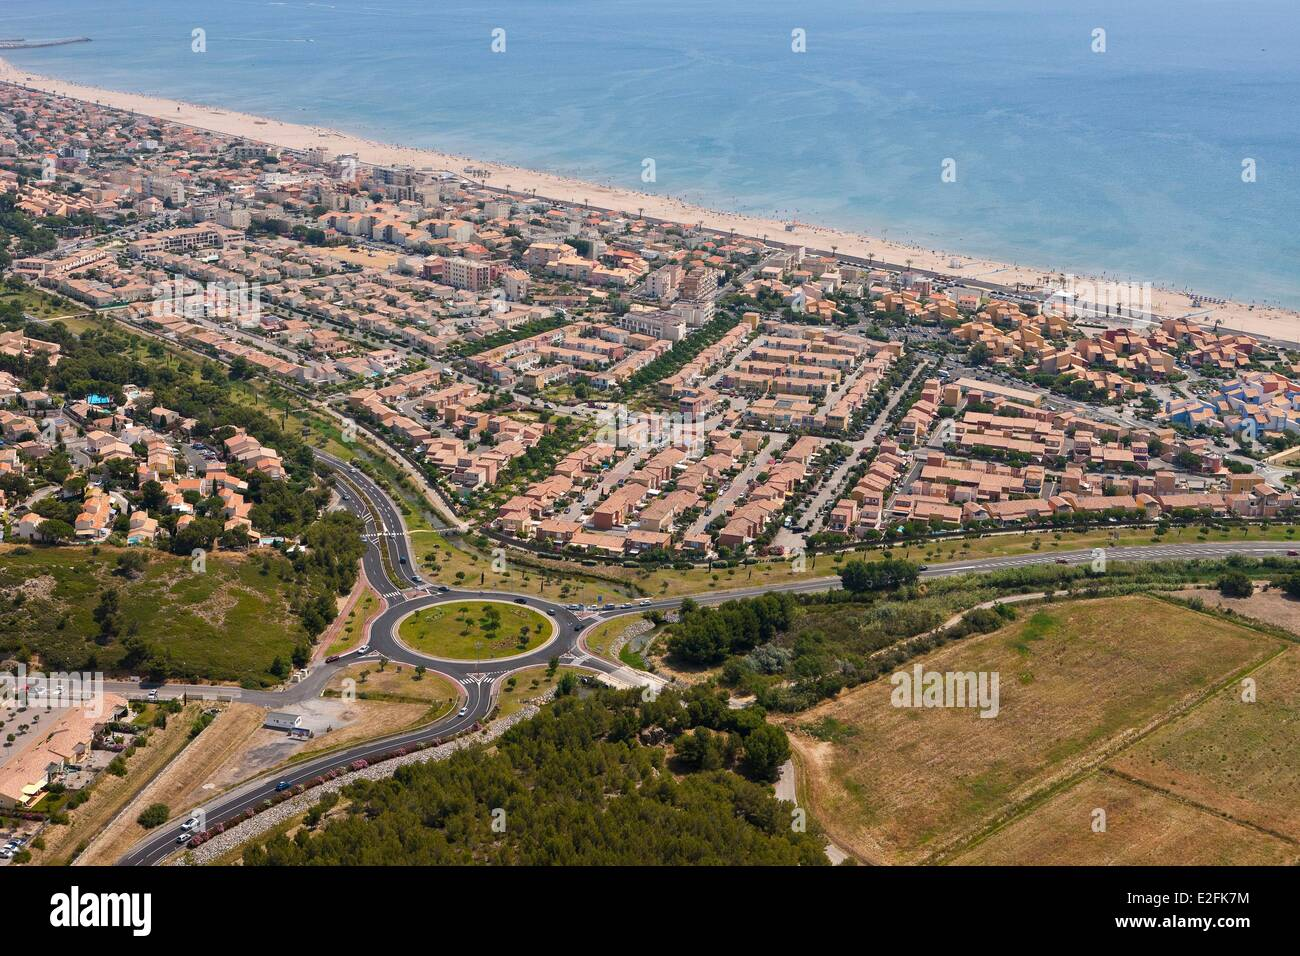 France, Herault, Narbonne Plage seaside resort, the beach (aerial view) - Stock Image